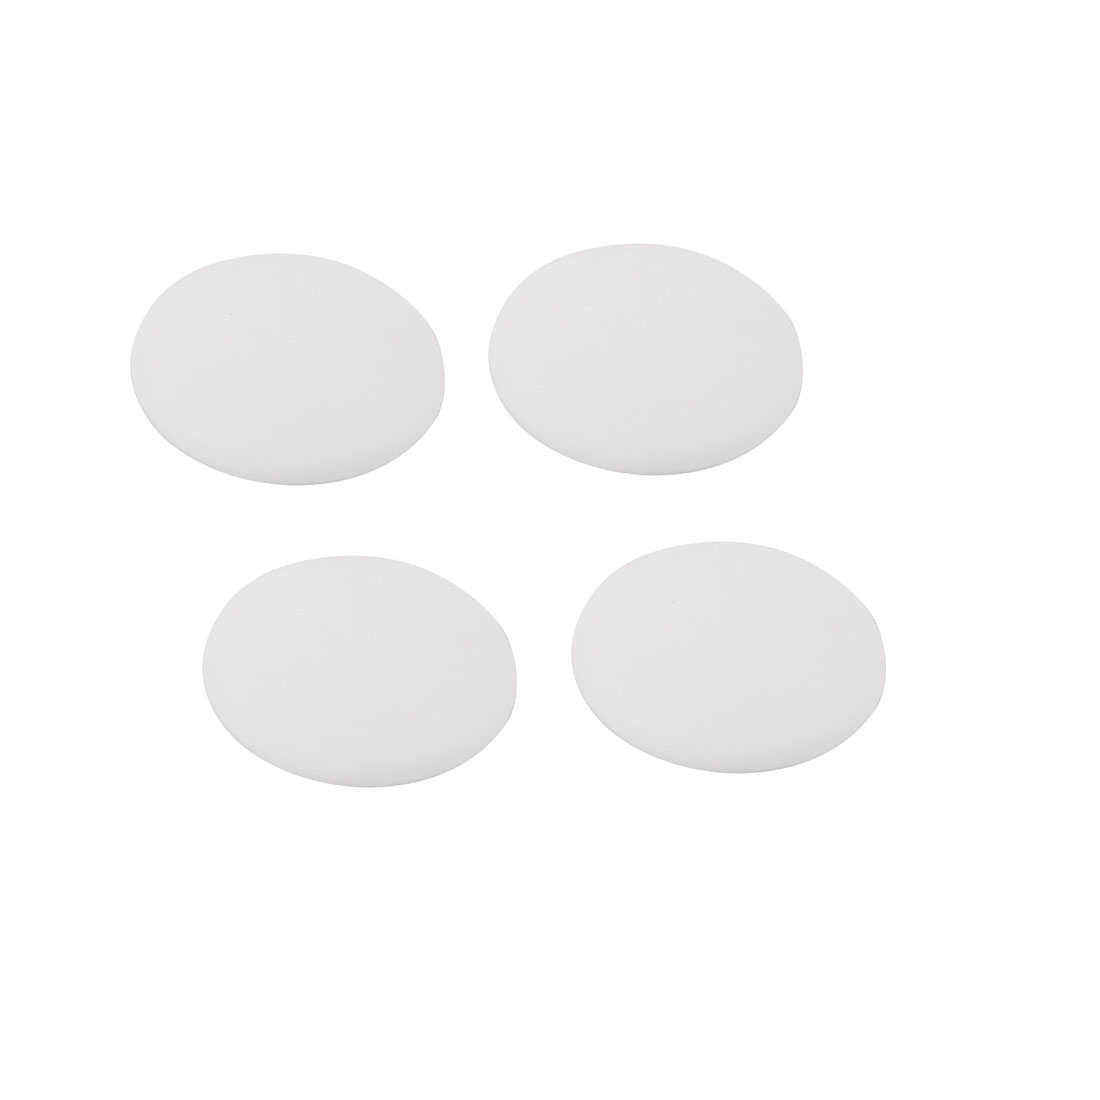 Round Chair Cushion Floor Furniture Protection Table Leg Pad Mat 4pcs